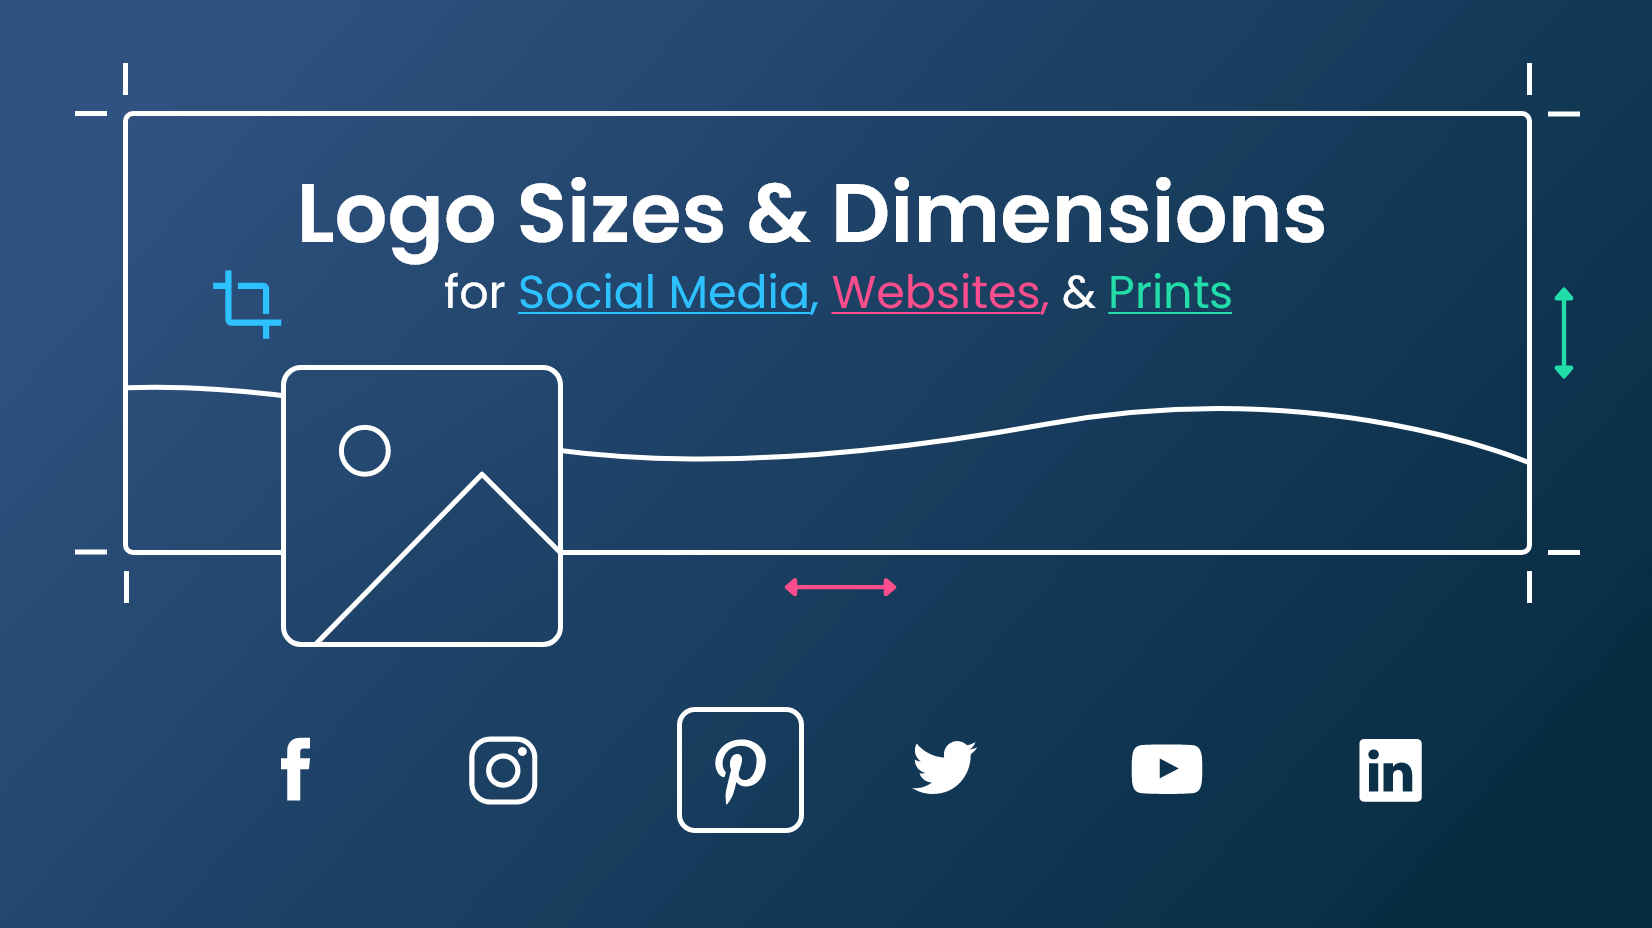 Logo Sizes and Dimensions for Social Media, Websites and Prints